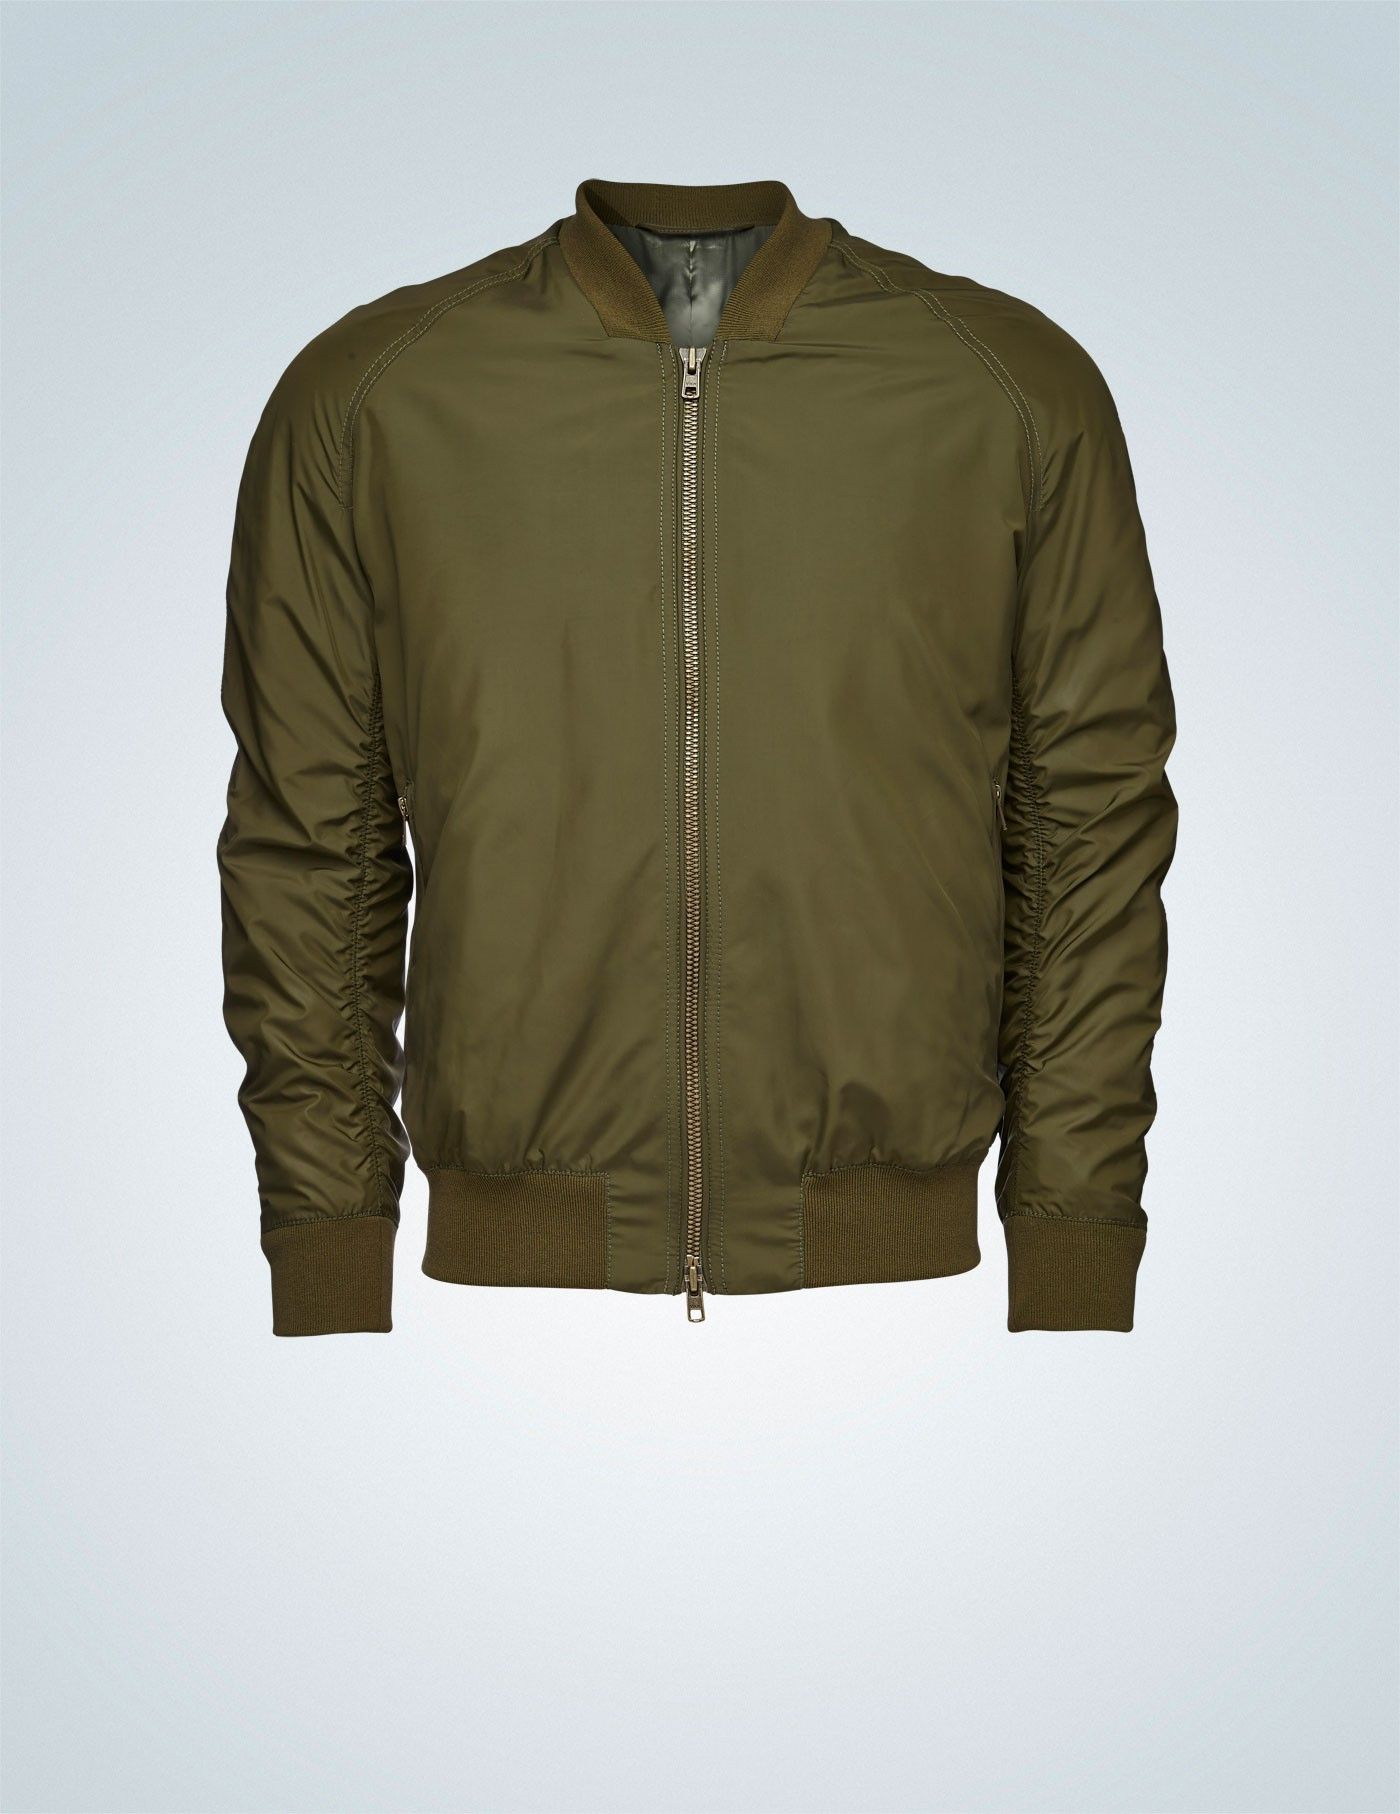 Of Tiger Sweden Military289 00 In Jackedusty € Chaos 5L3jR4A